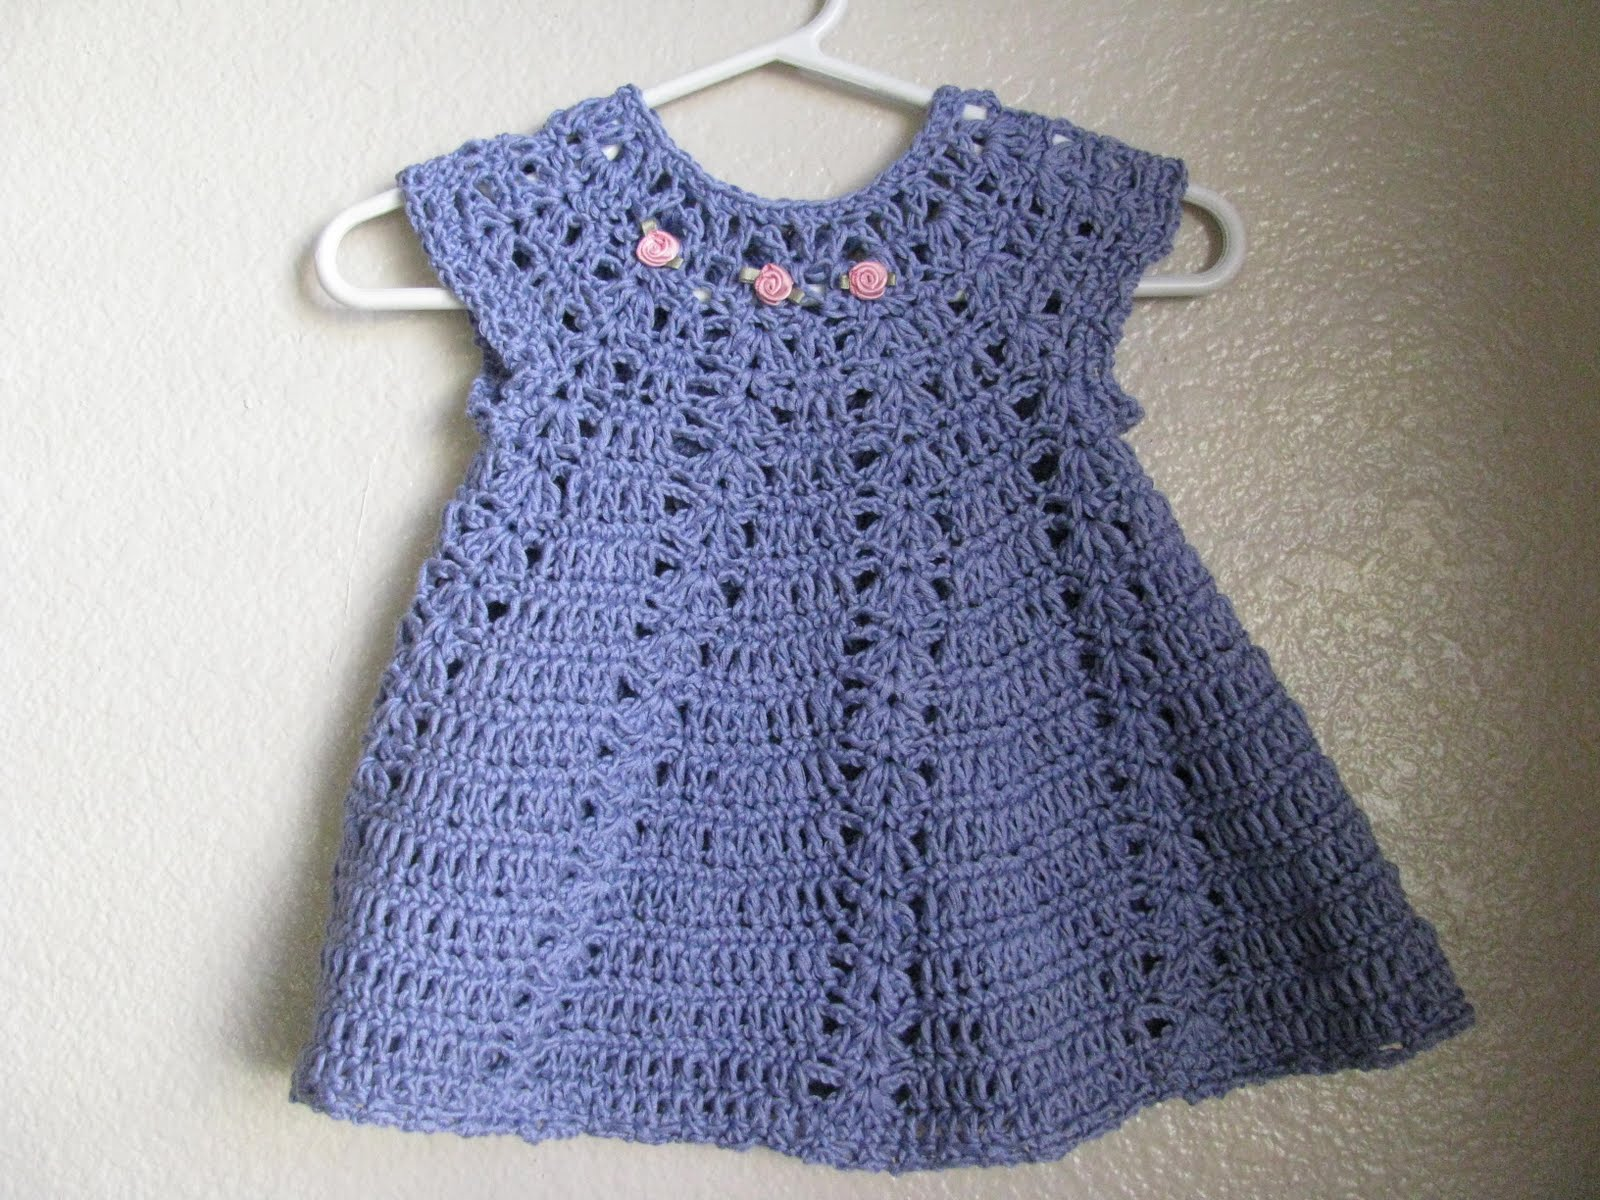 Crochet Baby Outfit Pattern : free baby crochet patterns baby clothes patterns free ...